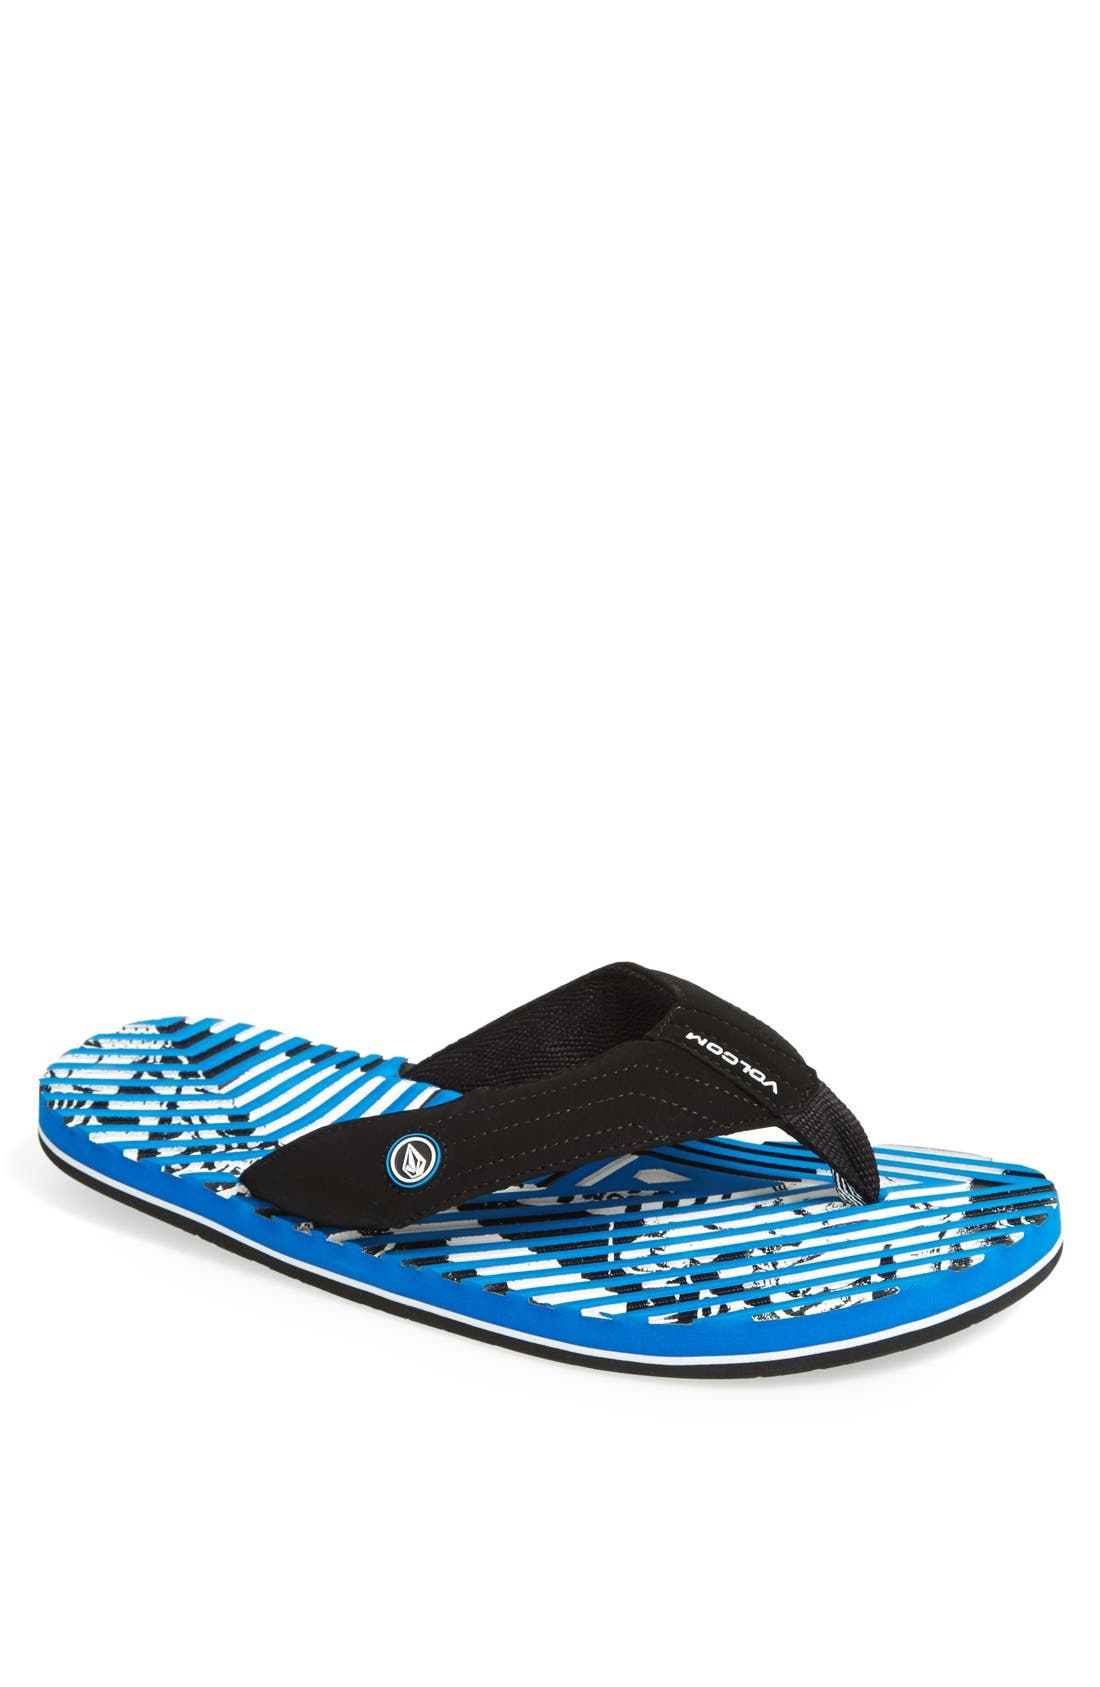 Main Image - Volcom 'Fraction' Flip Flop (Men)